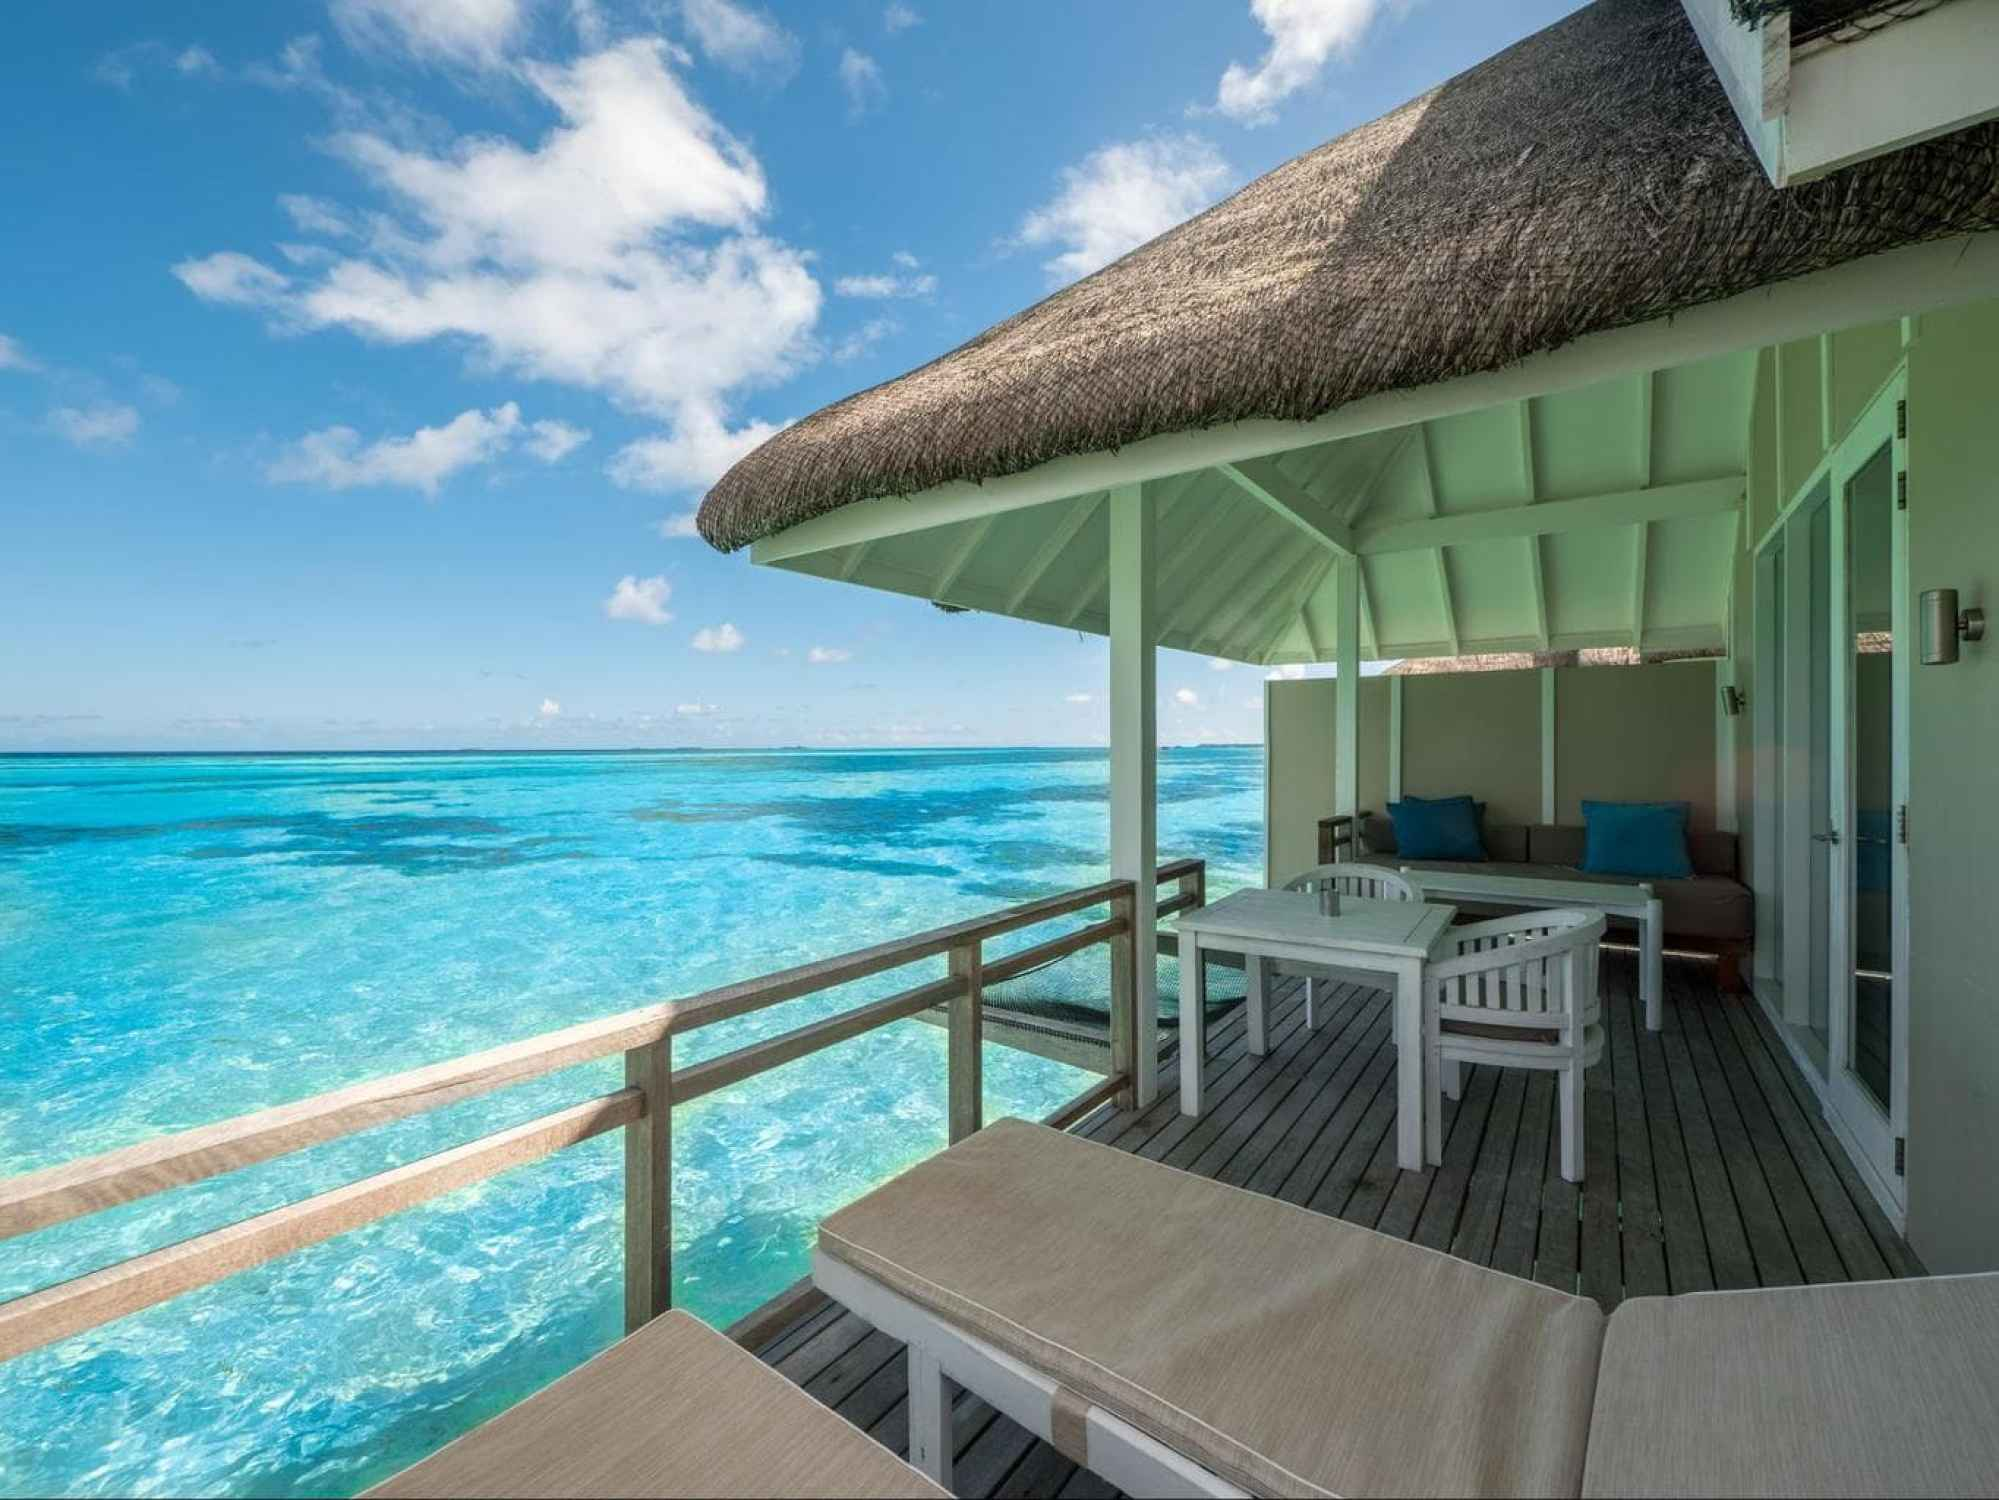 Outdoor deck at LUX* Maldives South Ari Atoll